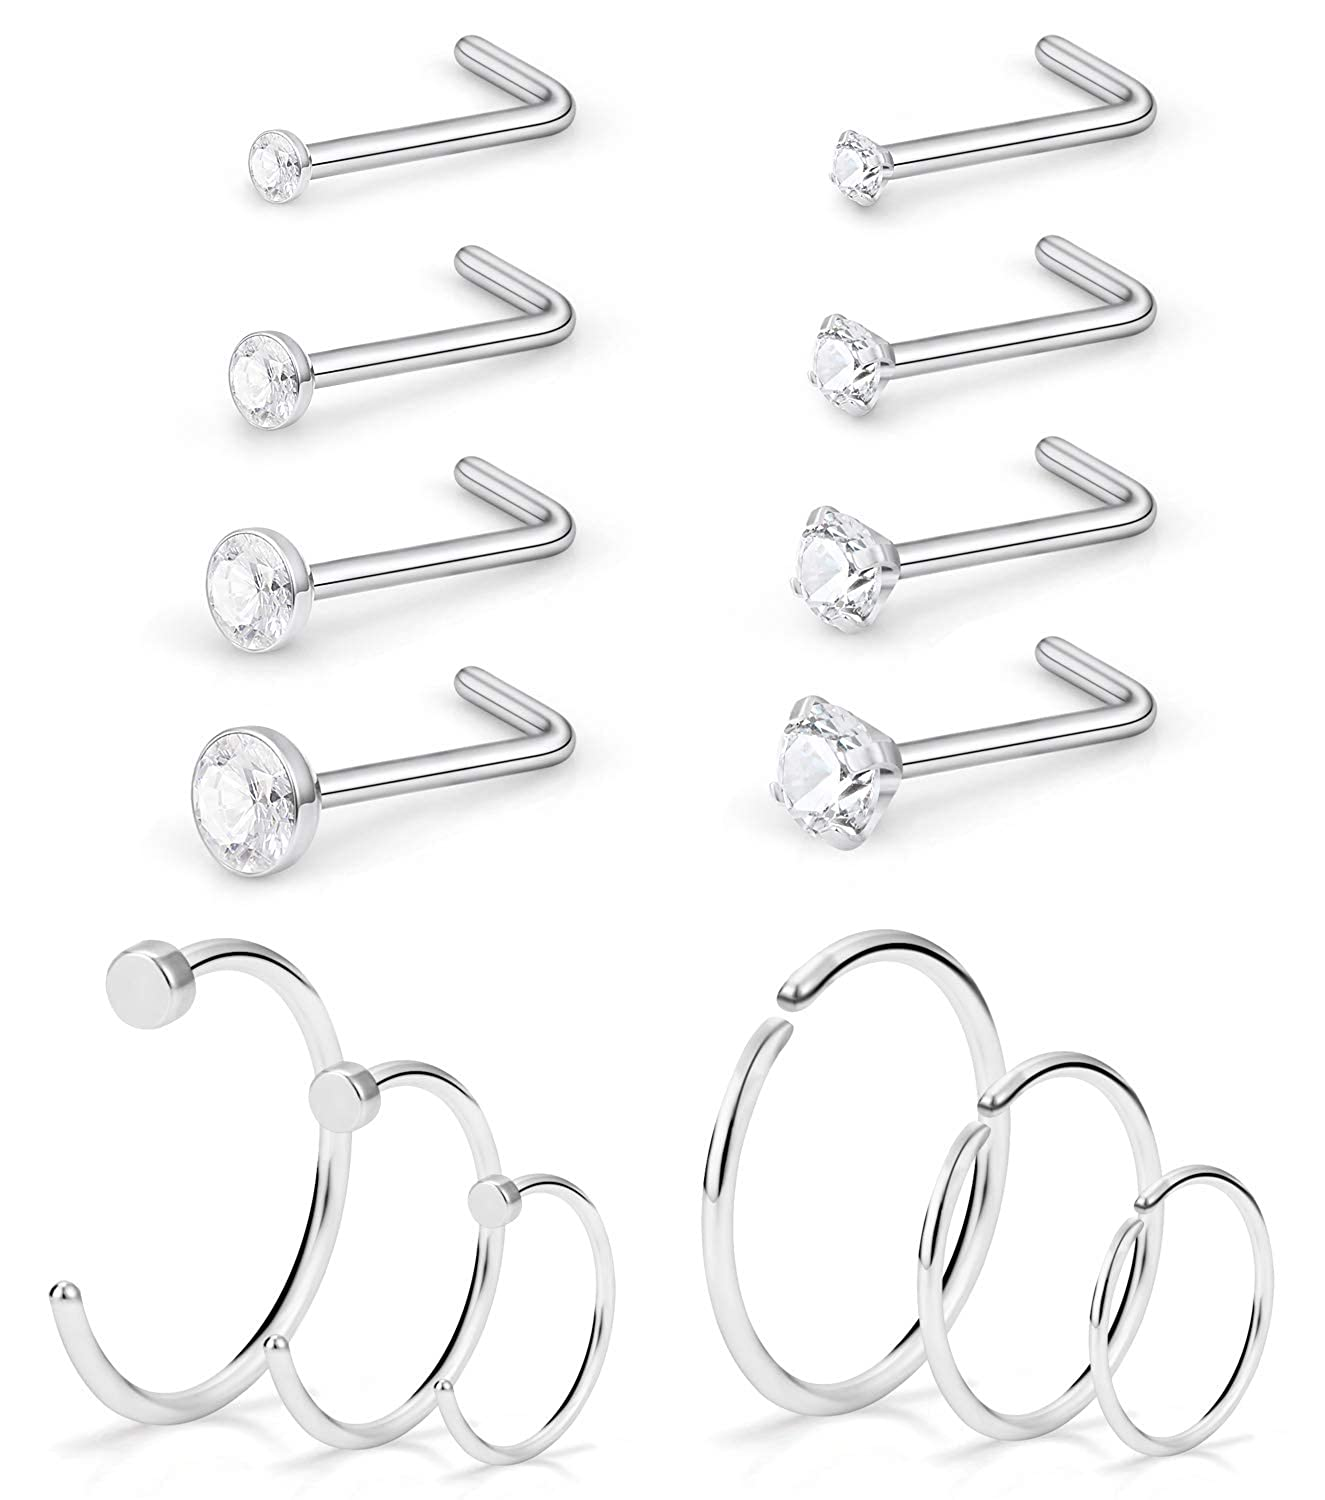 SCERRING 20G Nose Rings Hoop Stainless Steel Bone L Shaped Screw Clear CZ Nose Studs Cartilage Tragus Ear Piercing Ring Hoop Body Jewelry Set 14PCS BDS0170